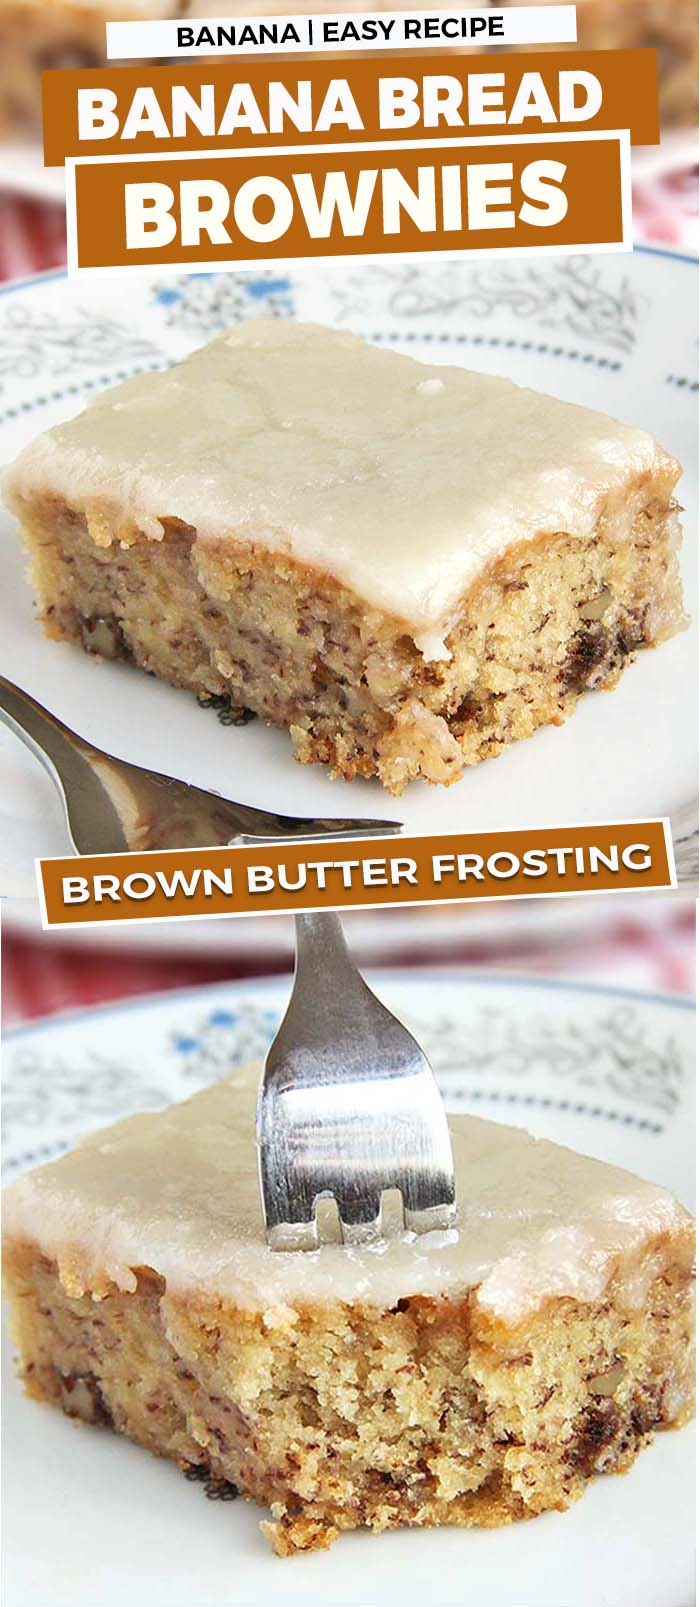 The sweet taste of banana bread brownies topped with a brown butter frosting.